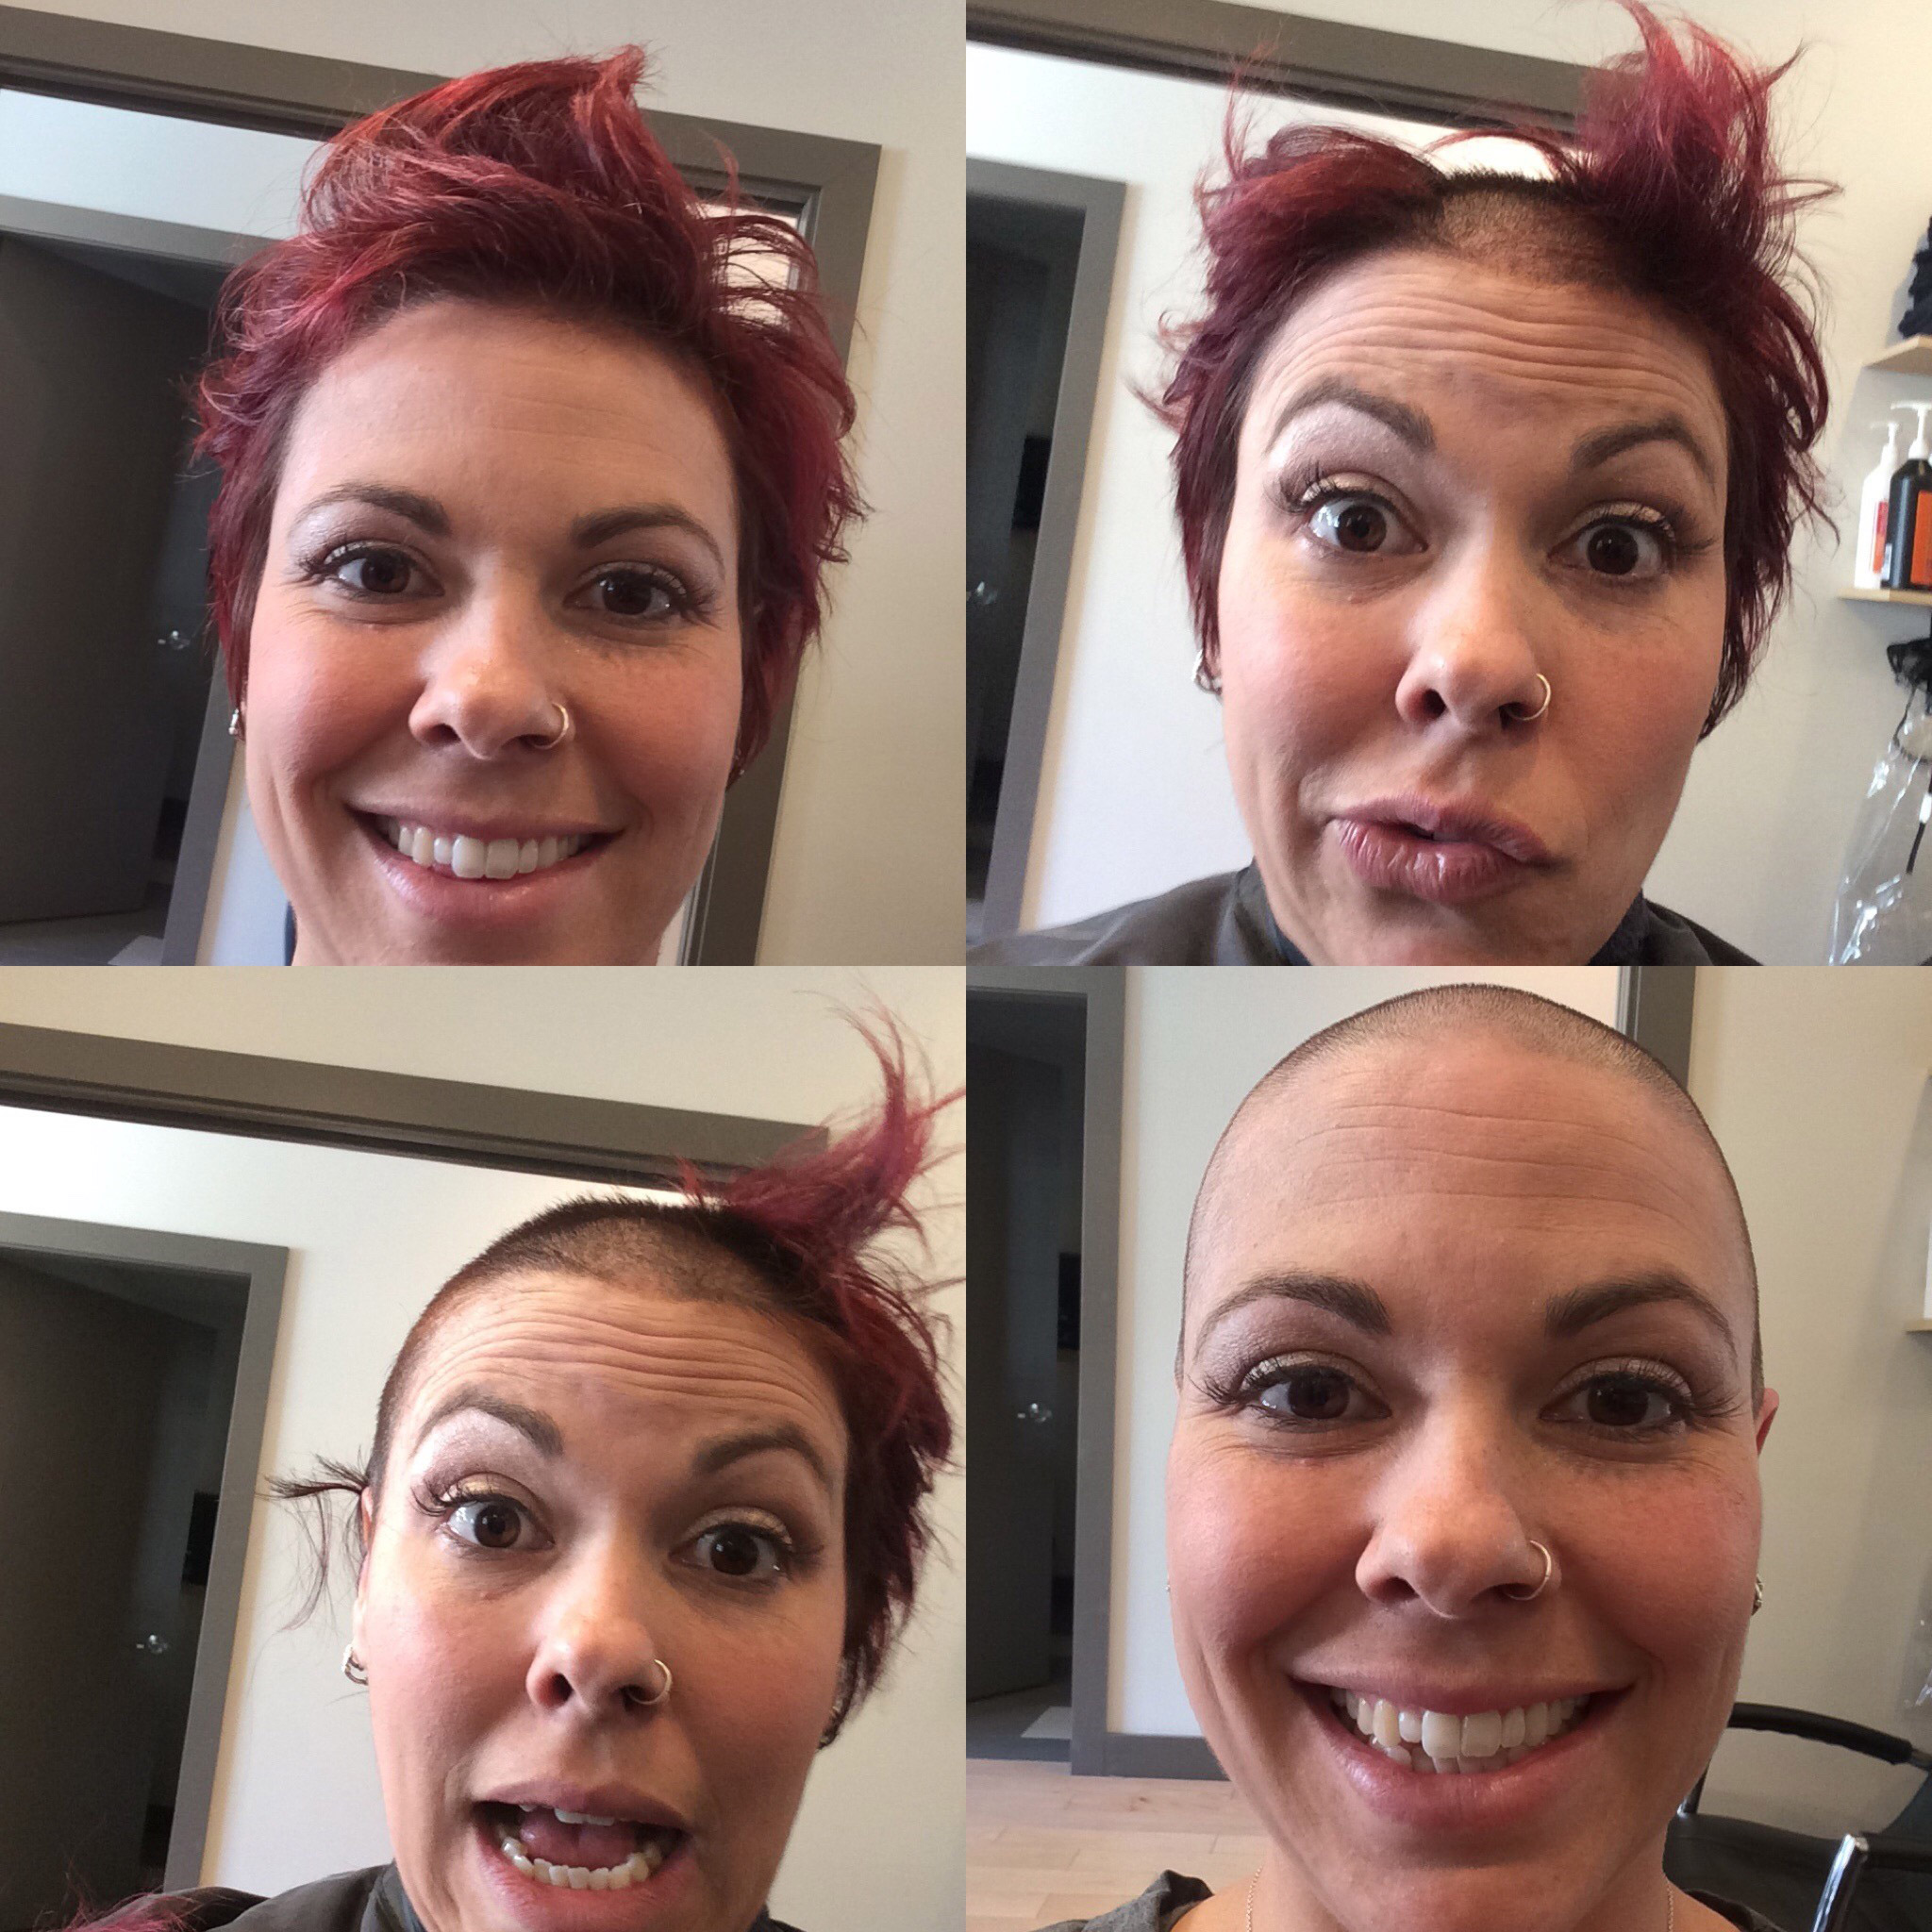 A collage of four pictures shows Stephanie's hair shaving journey from full hair to completely bald